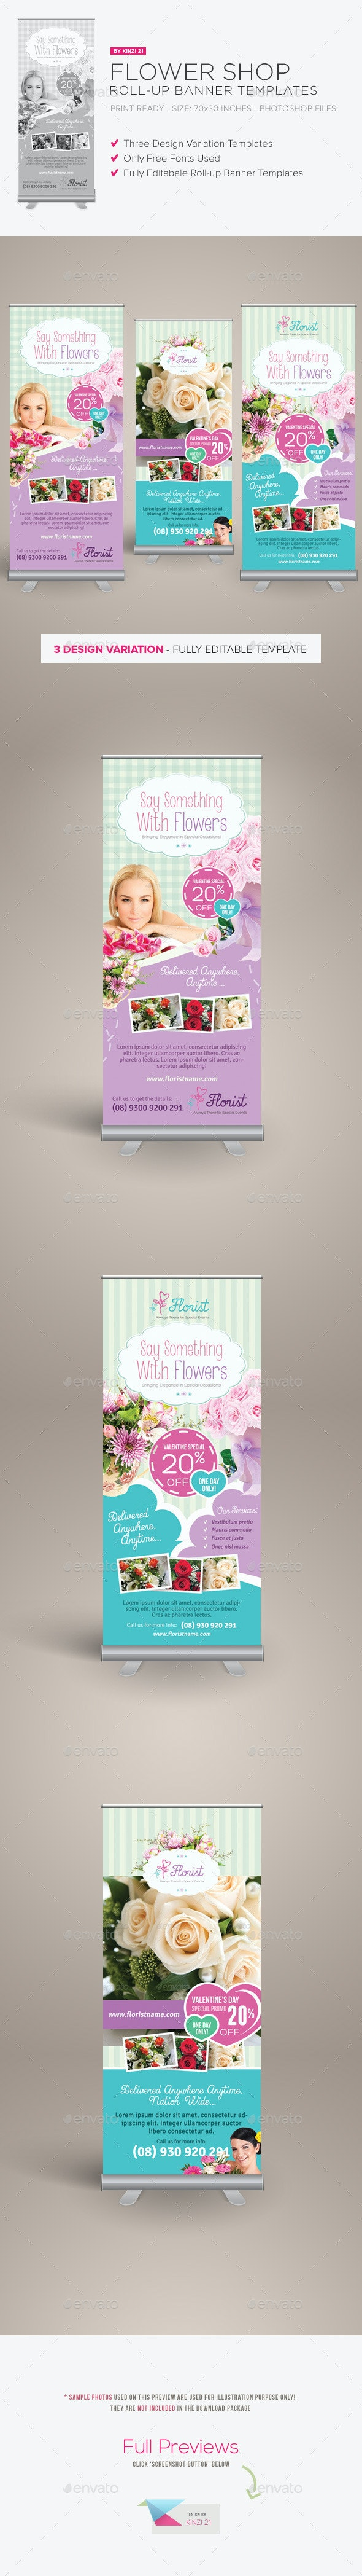 Flower Shop Roll-up Banners - Signage Print Templates